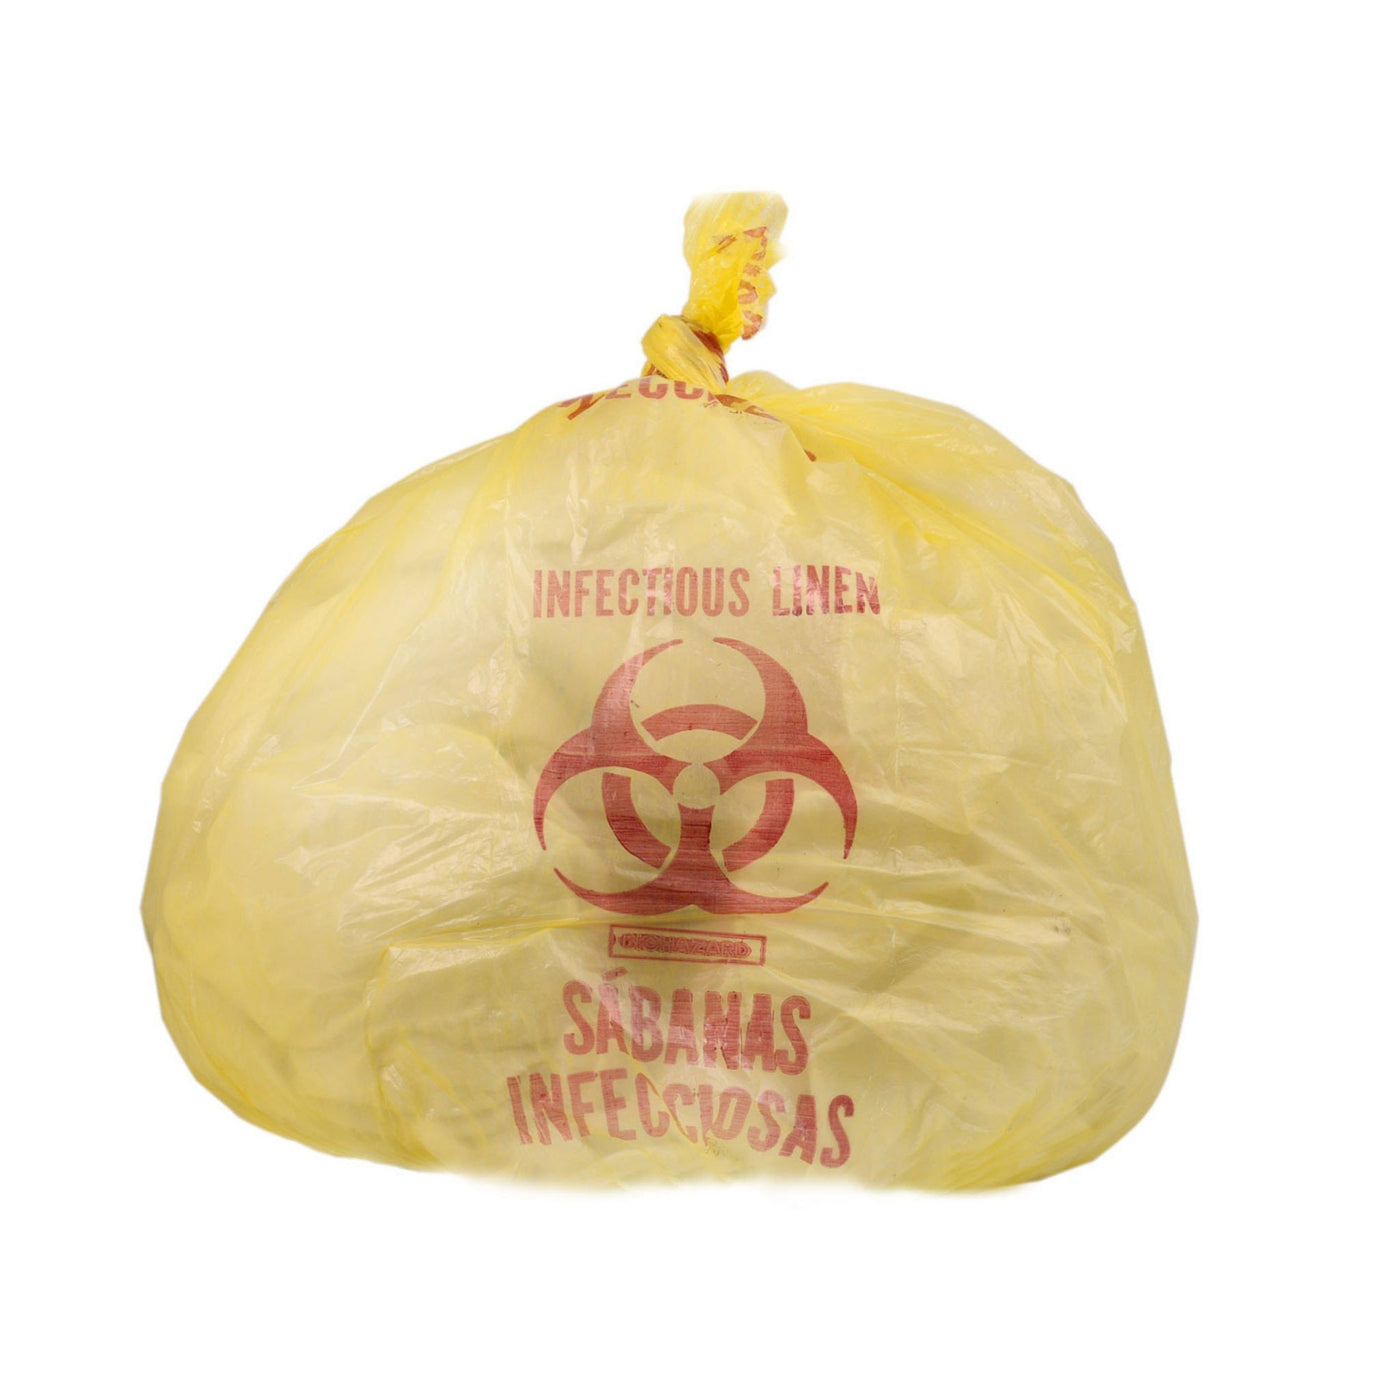 Yellow Infectious Waste Liners-Laboratory Accessory-Mortech Manufacturing Company Inc. Quality Stainless Steel Autopsy, Morgue, Funeral Home, Necropsy, Veterinary / Anatomy, Dissection Equipment and Accessories